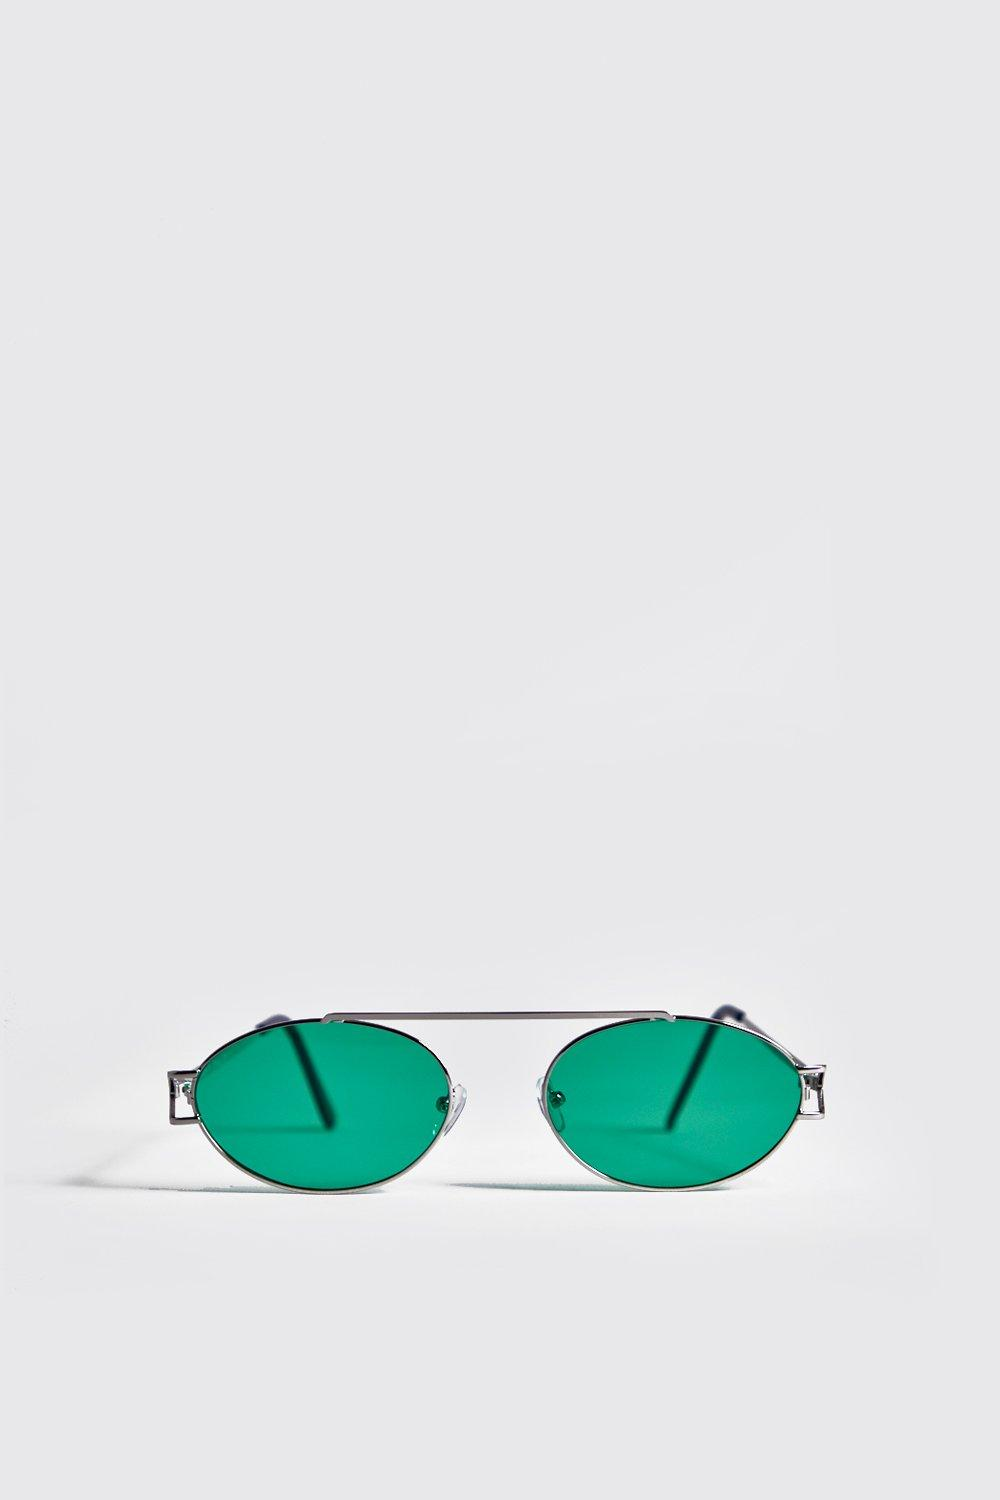 Green Lens Round Metal Frame Sunglasses